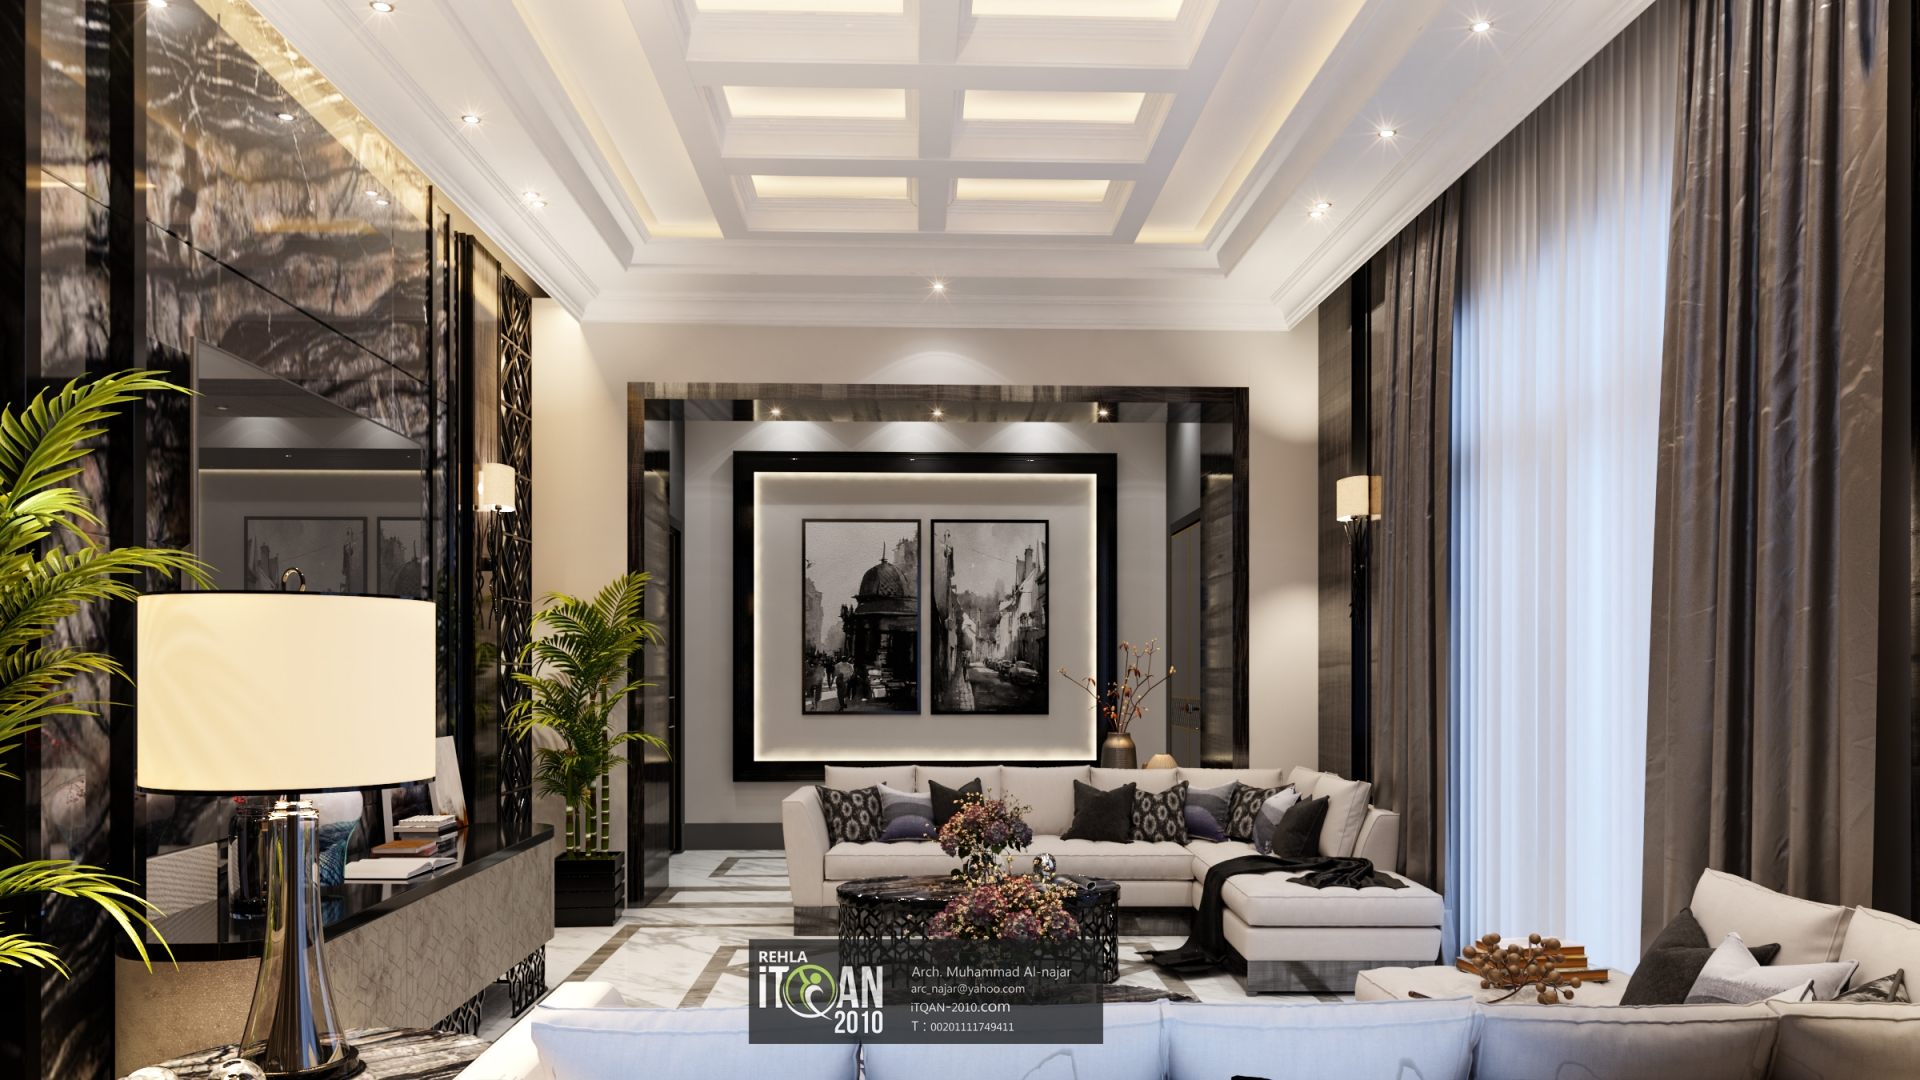 modern interior living room exclusive design | Post modern living room - UAE | ITQAN-2010